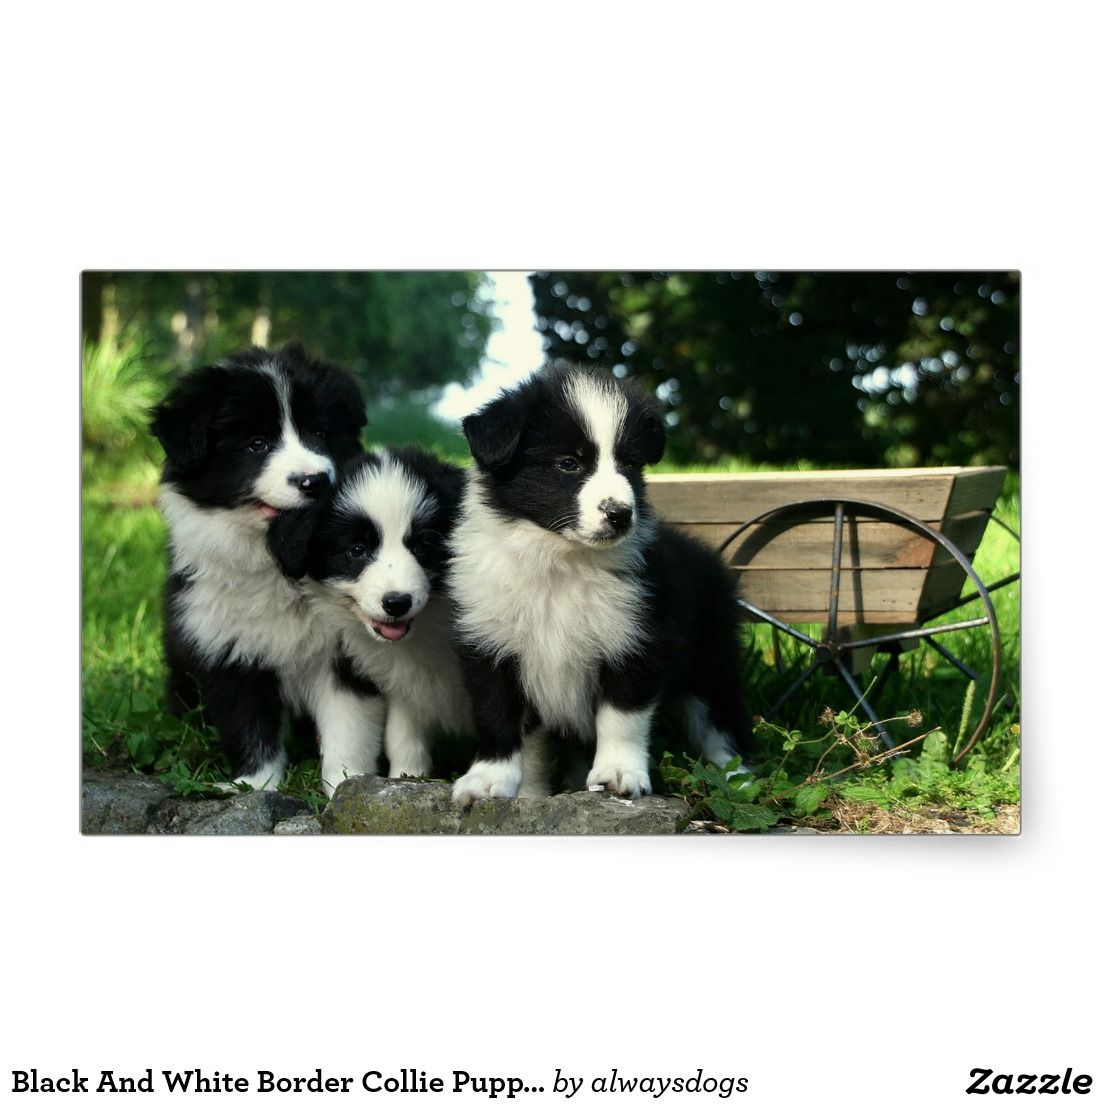 Black And White Border Collie Puppy Dogs Stickers Zazzle Com Collie Puppies Border Collie Puppies Border Collie Training